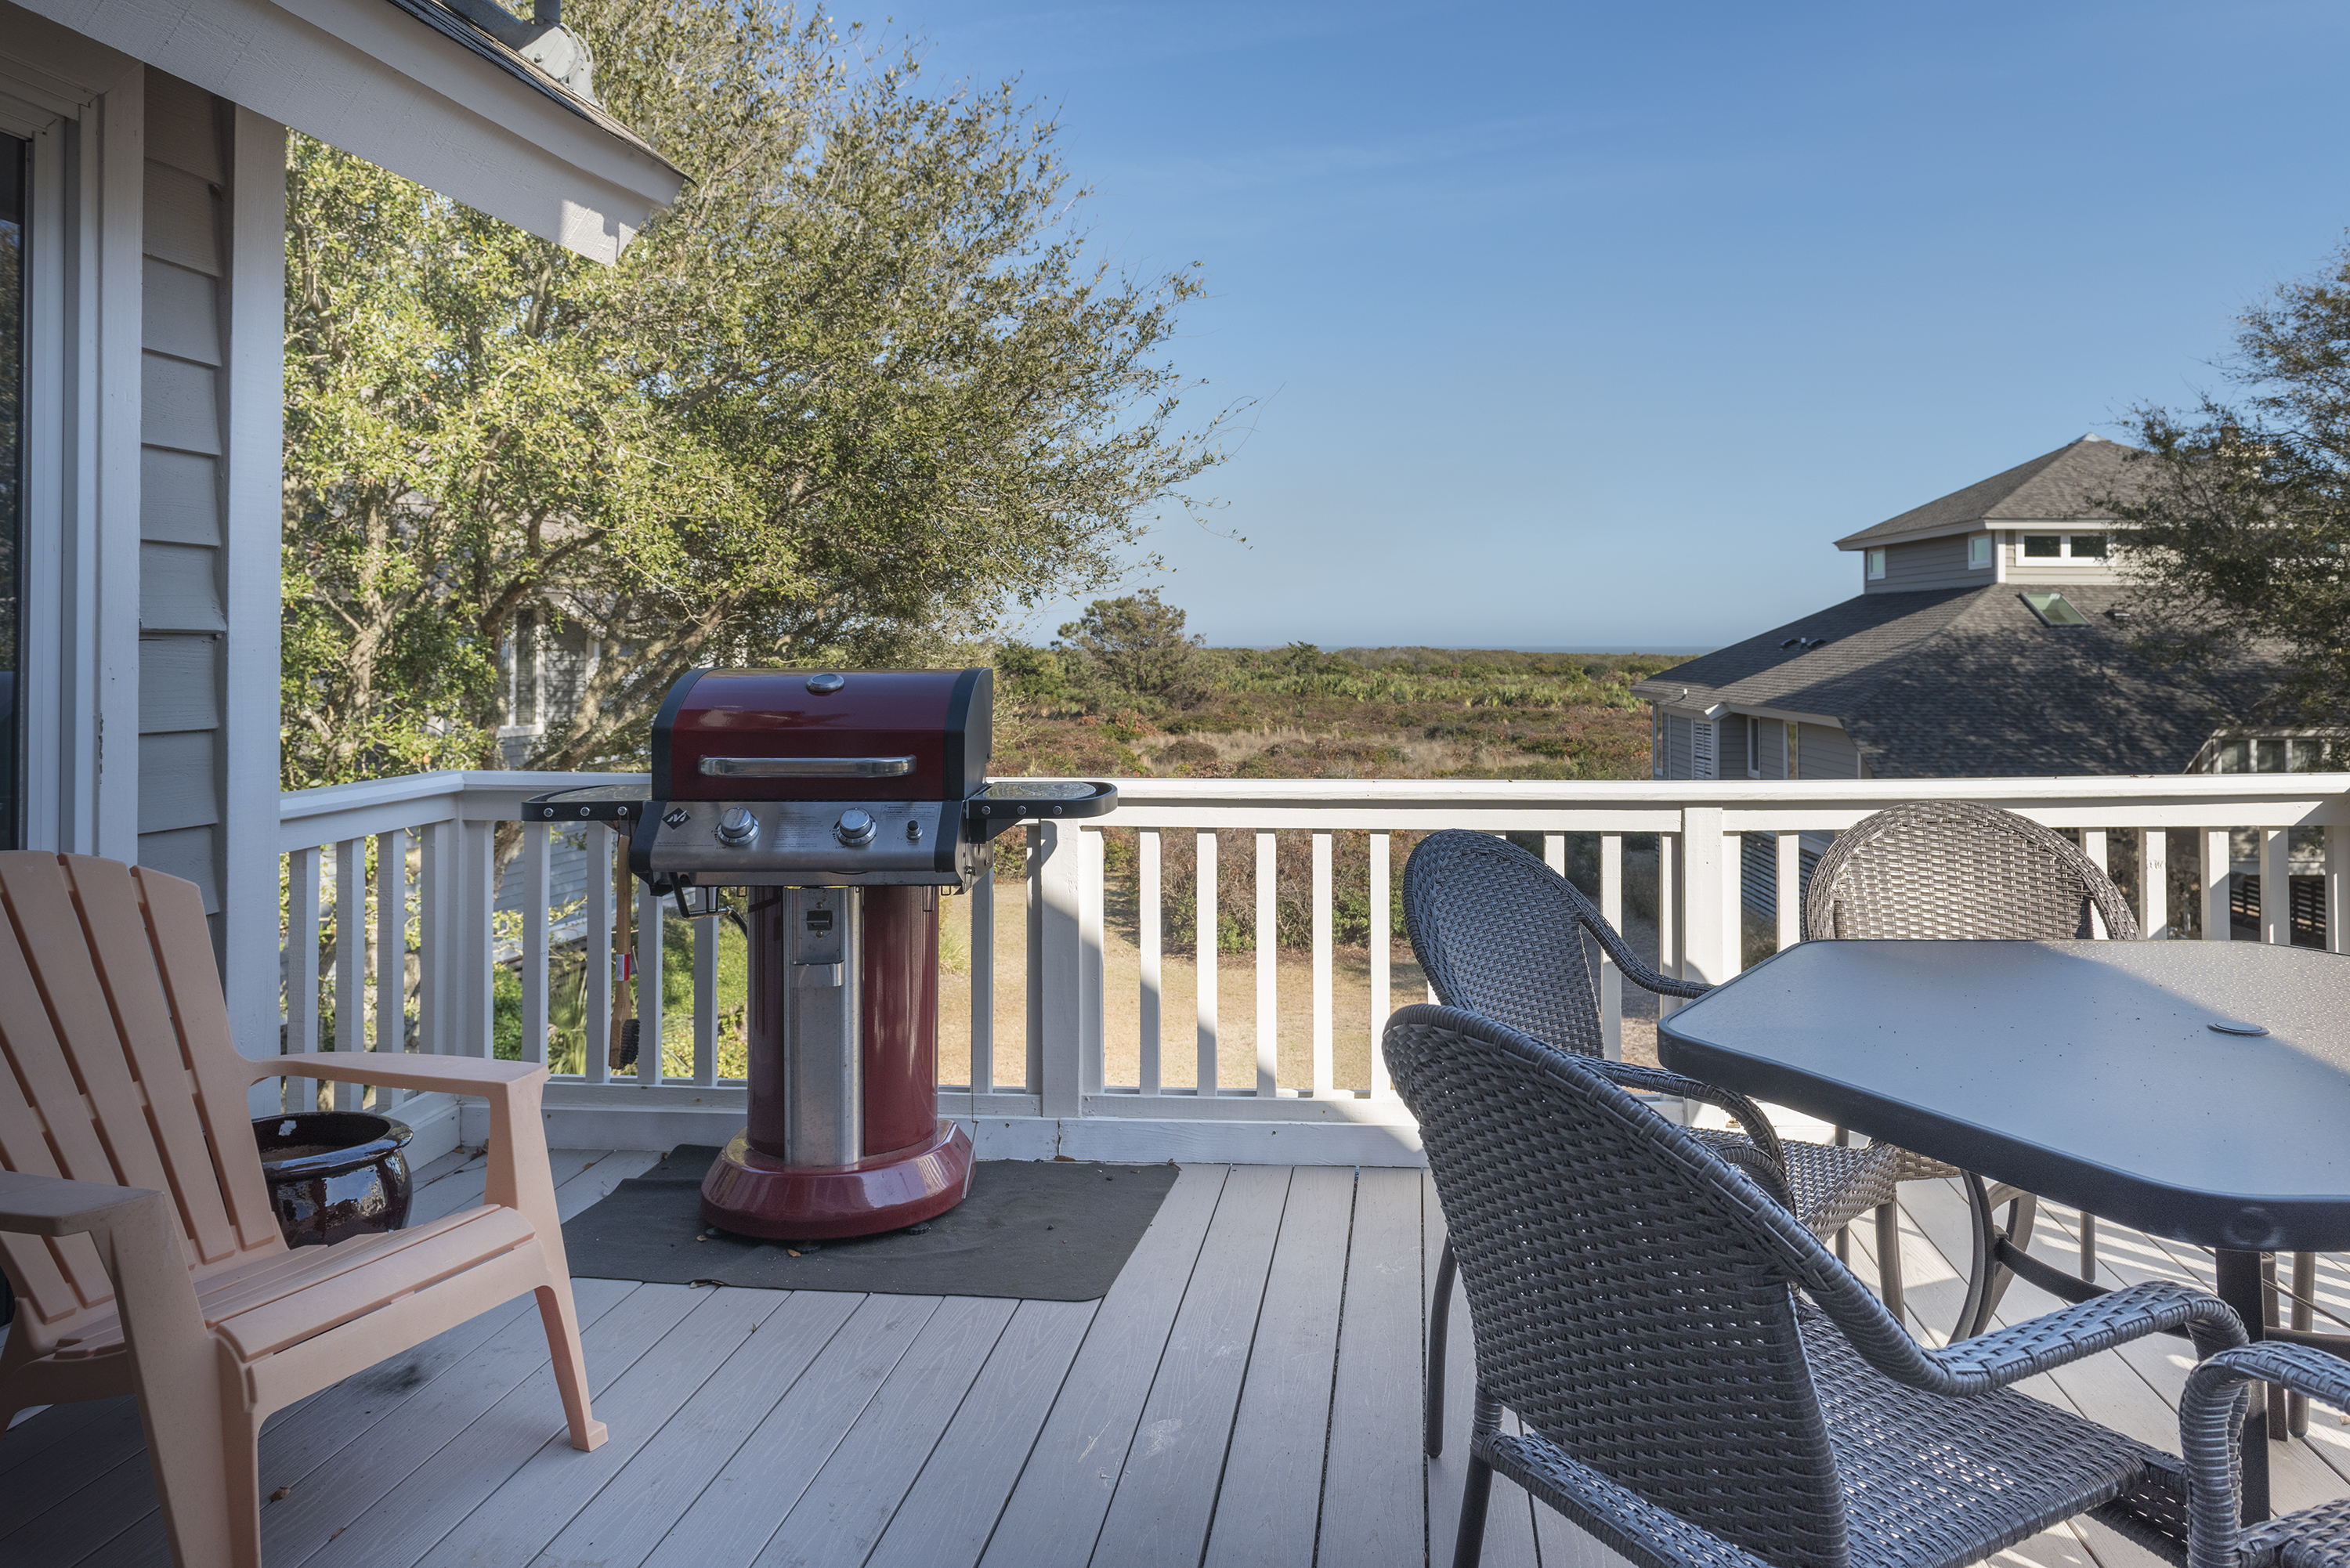 The deck has a gas grill, Adirondack chairs, and a dining table for 6.